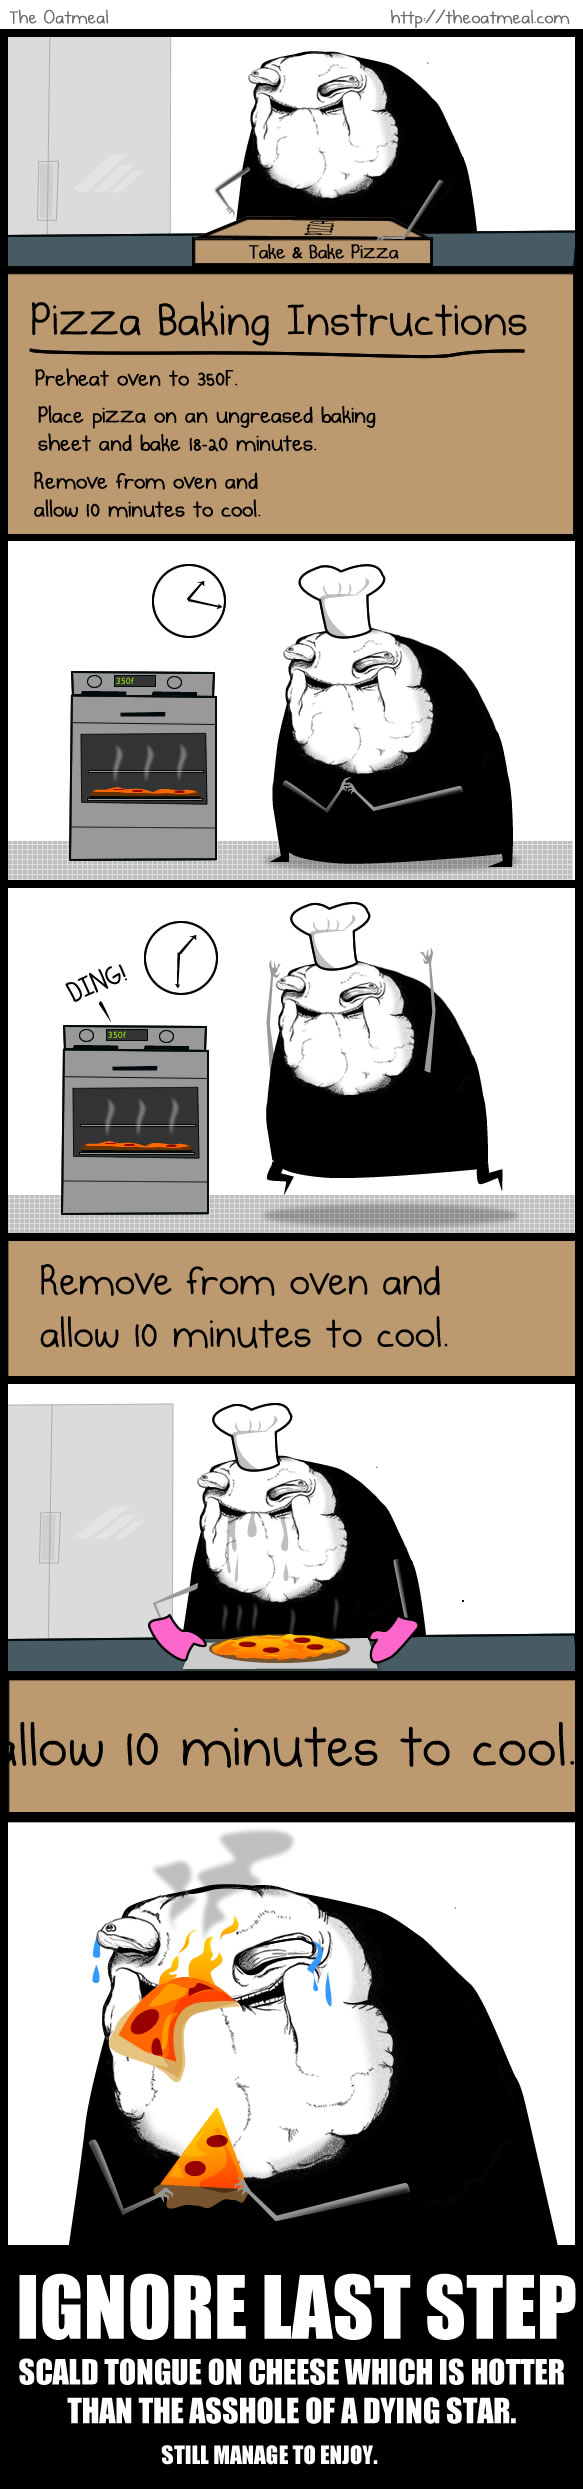 The final step of baking a pizza